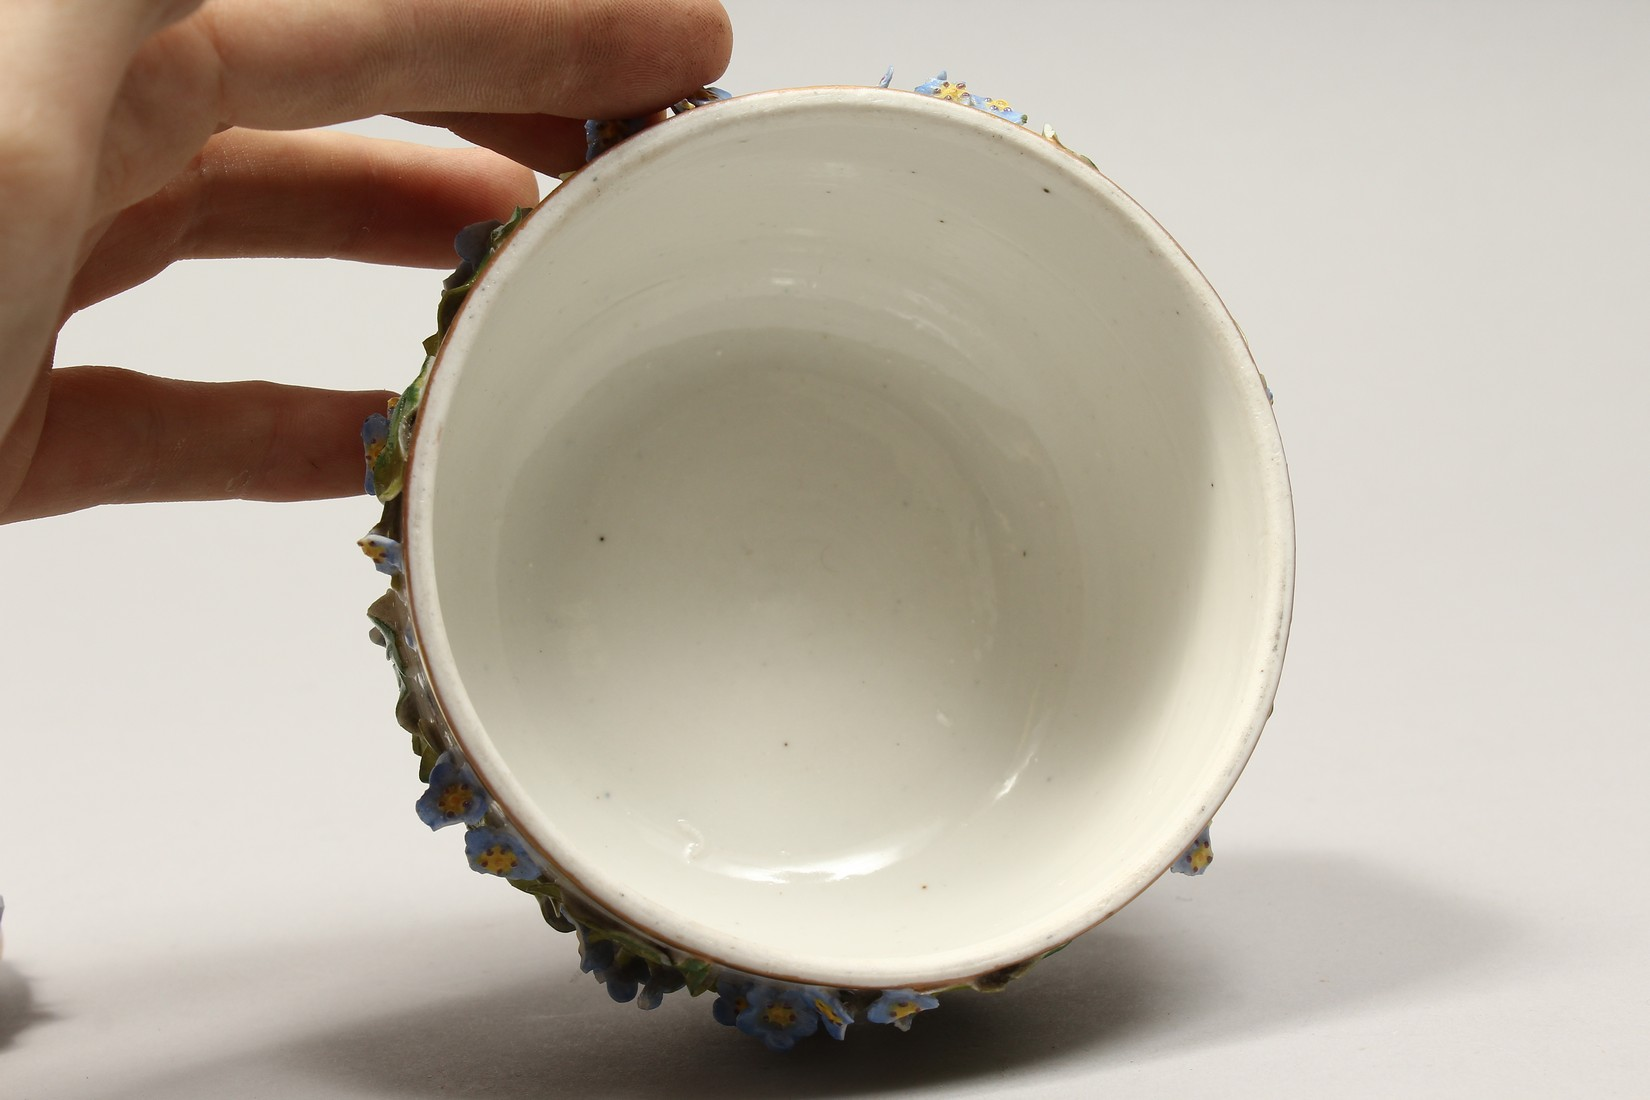 A DRESDON CIRCULAR BOWL AND COVER painted with moths and encrusted with flowers. 4.5ins diameter. - Image 6 of 8